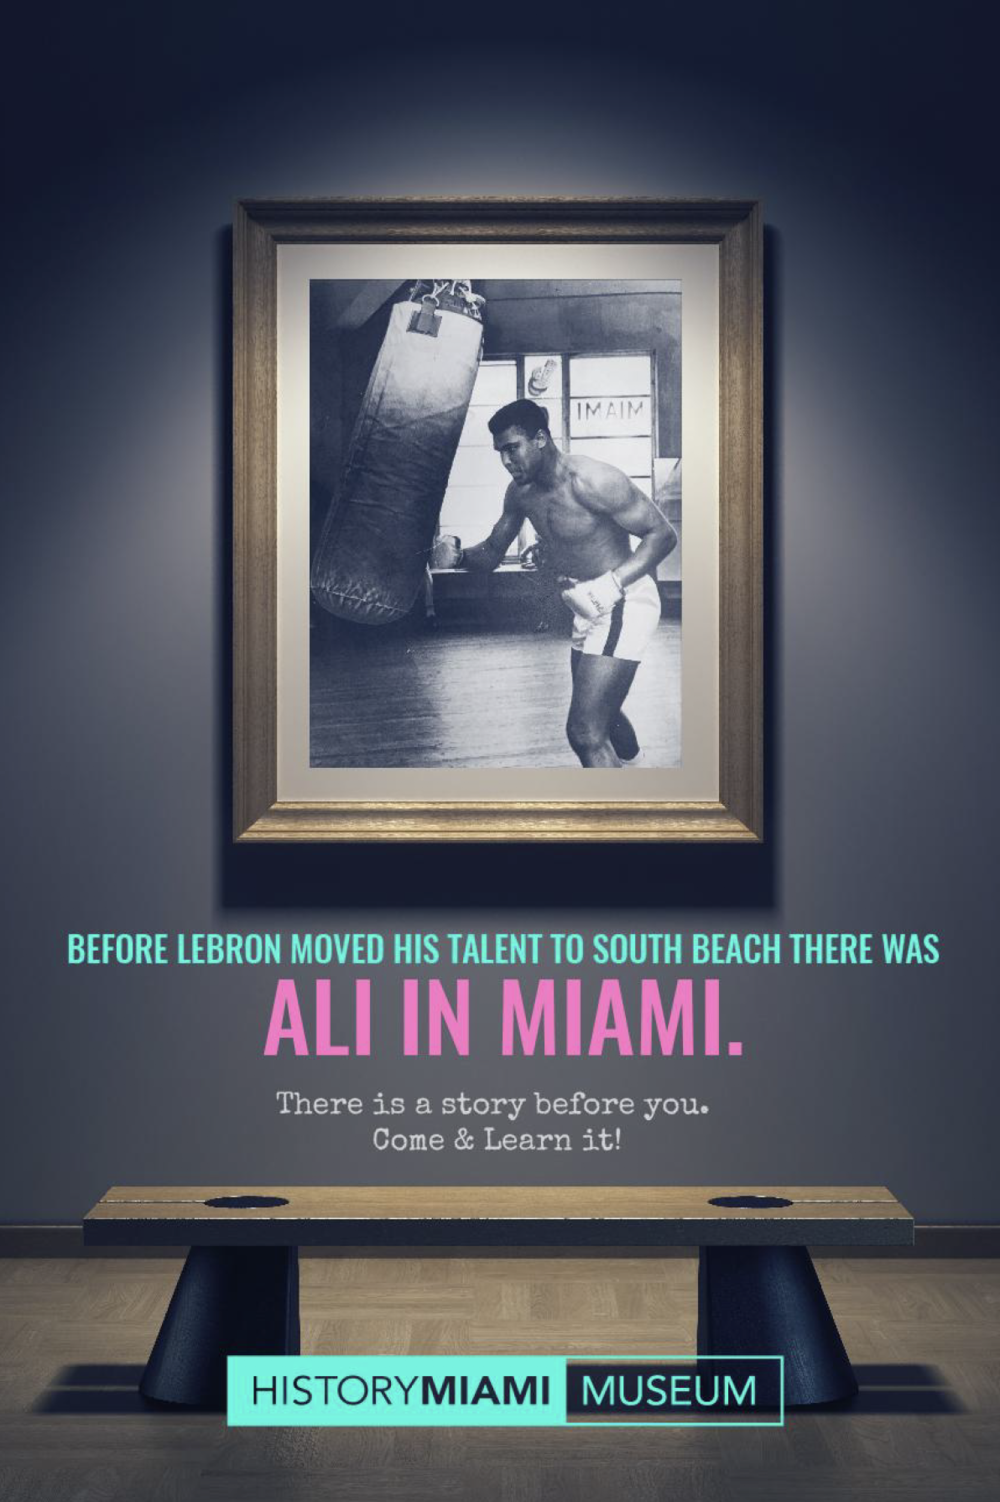 - We are telling the public a part of history they might have missed. We connect today's events, objects, and people with Miami's past. By placing the text in a way that entices the public to read its entirety, after being teased by a big headline, history is presented visually, to imply ownership and patrimony.